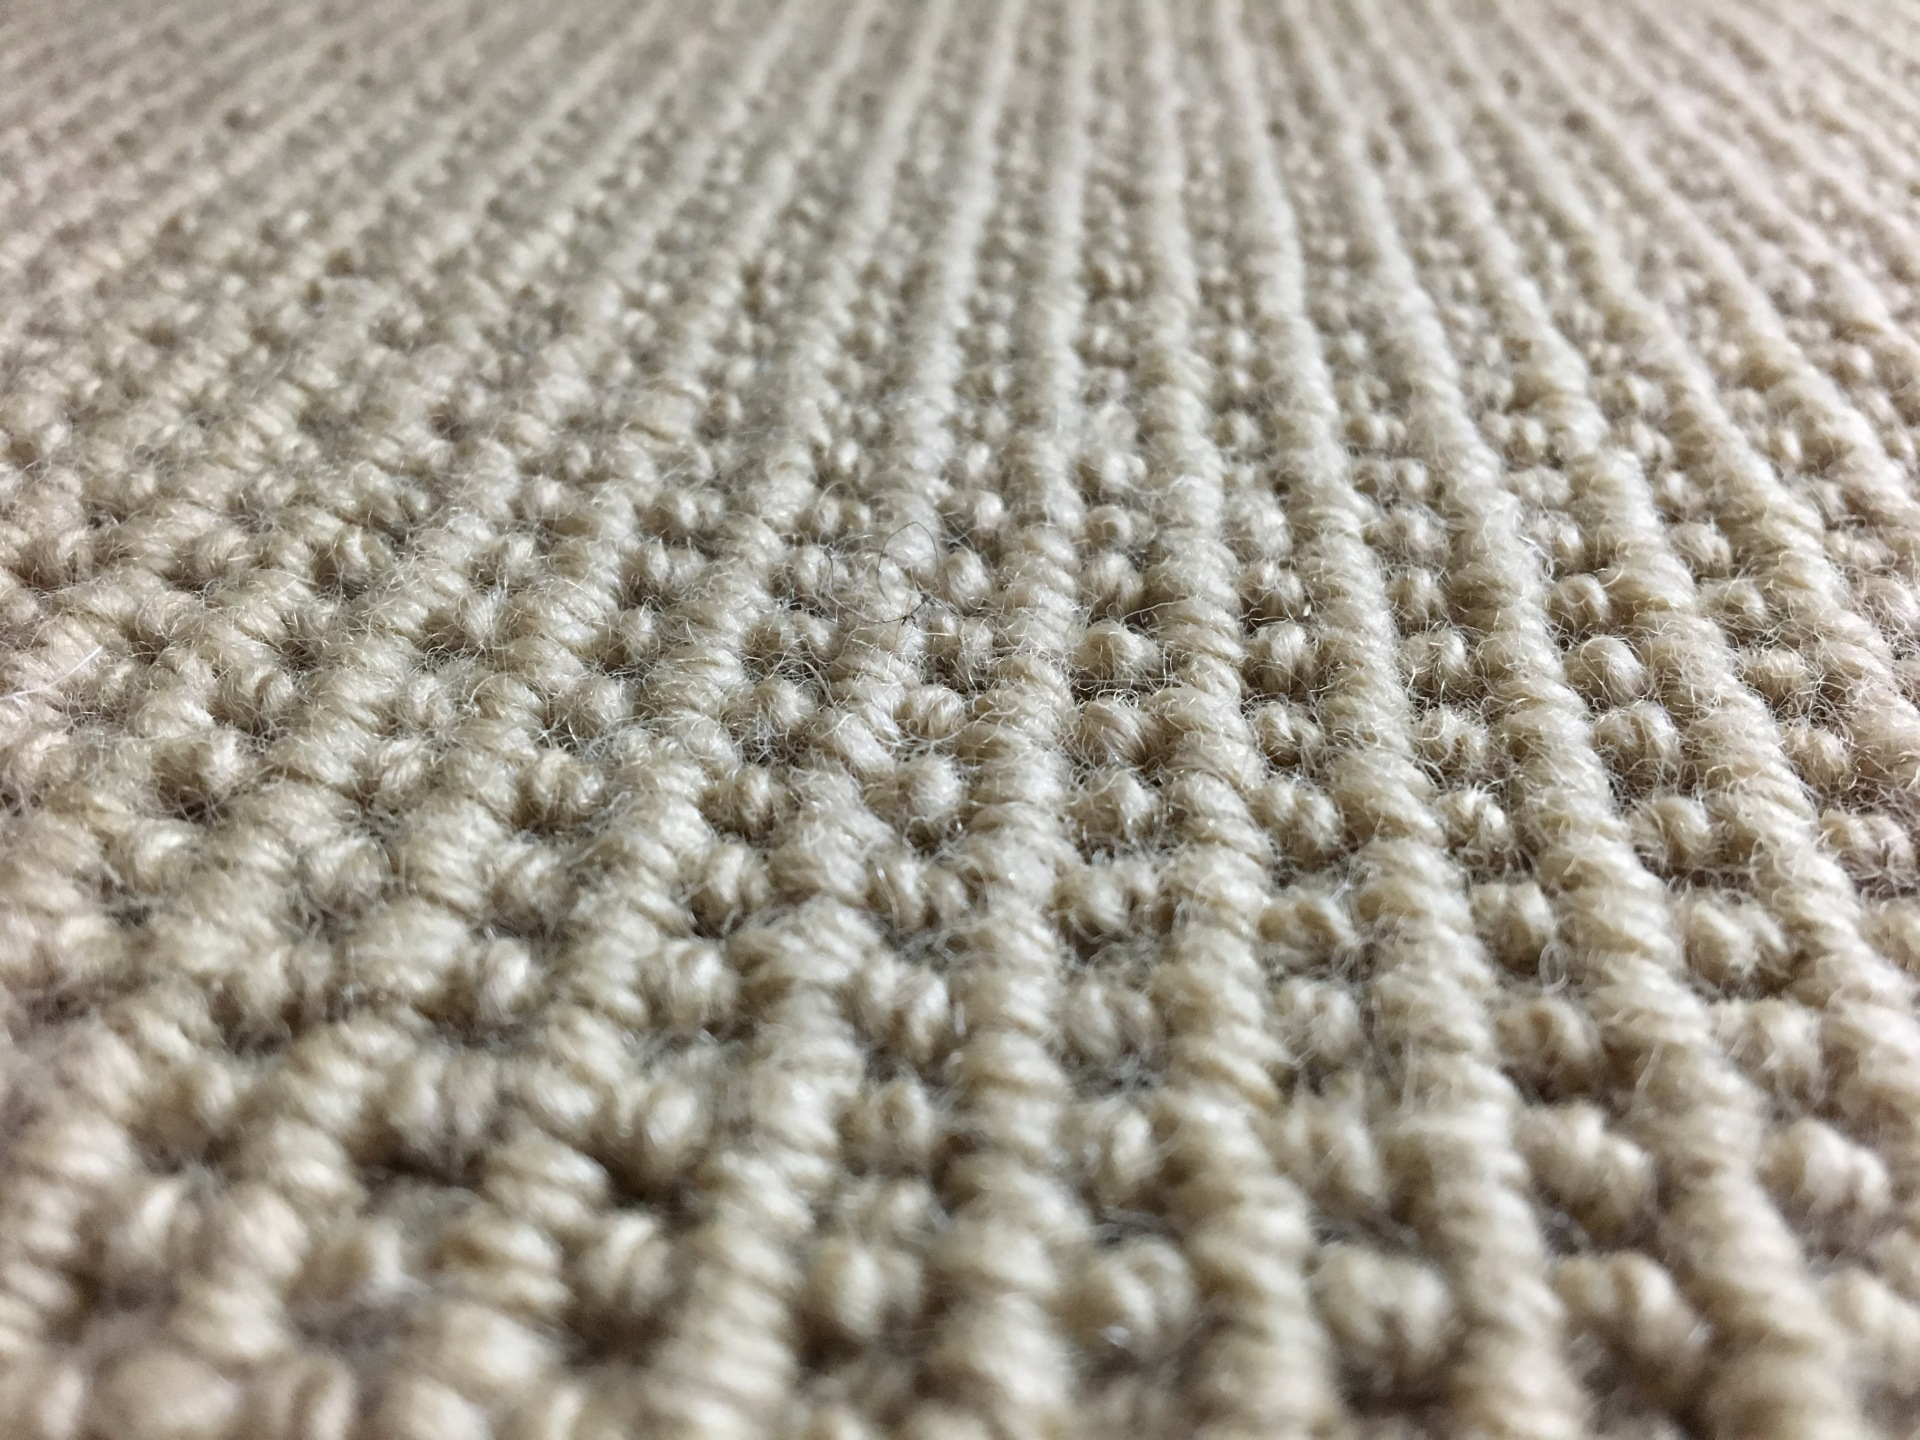 Carpet, area rugs, natural fibers, carpeting, rug, wall to wall carpet, plush, thick, comfortable, soft, clean carpet, unique carpets, UCL, unique carpets ltd